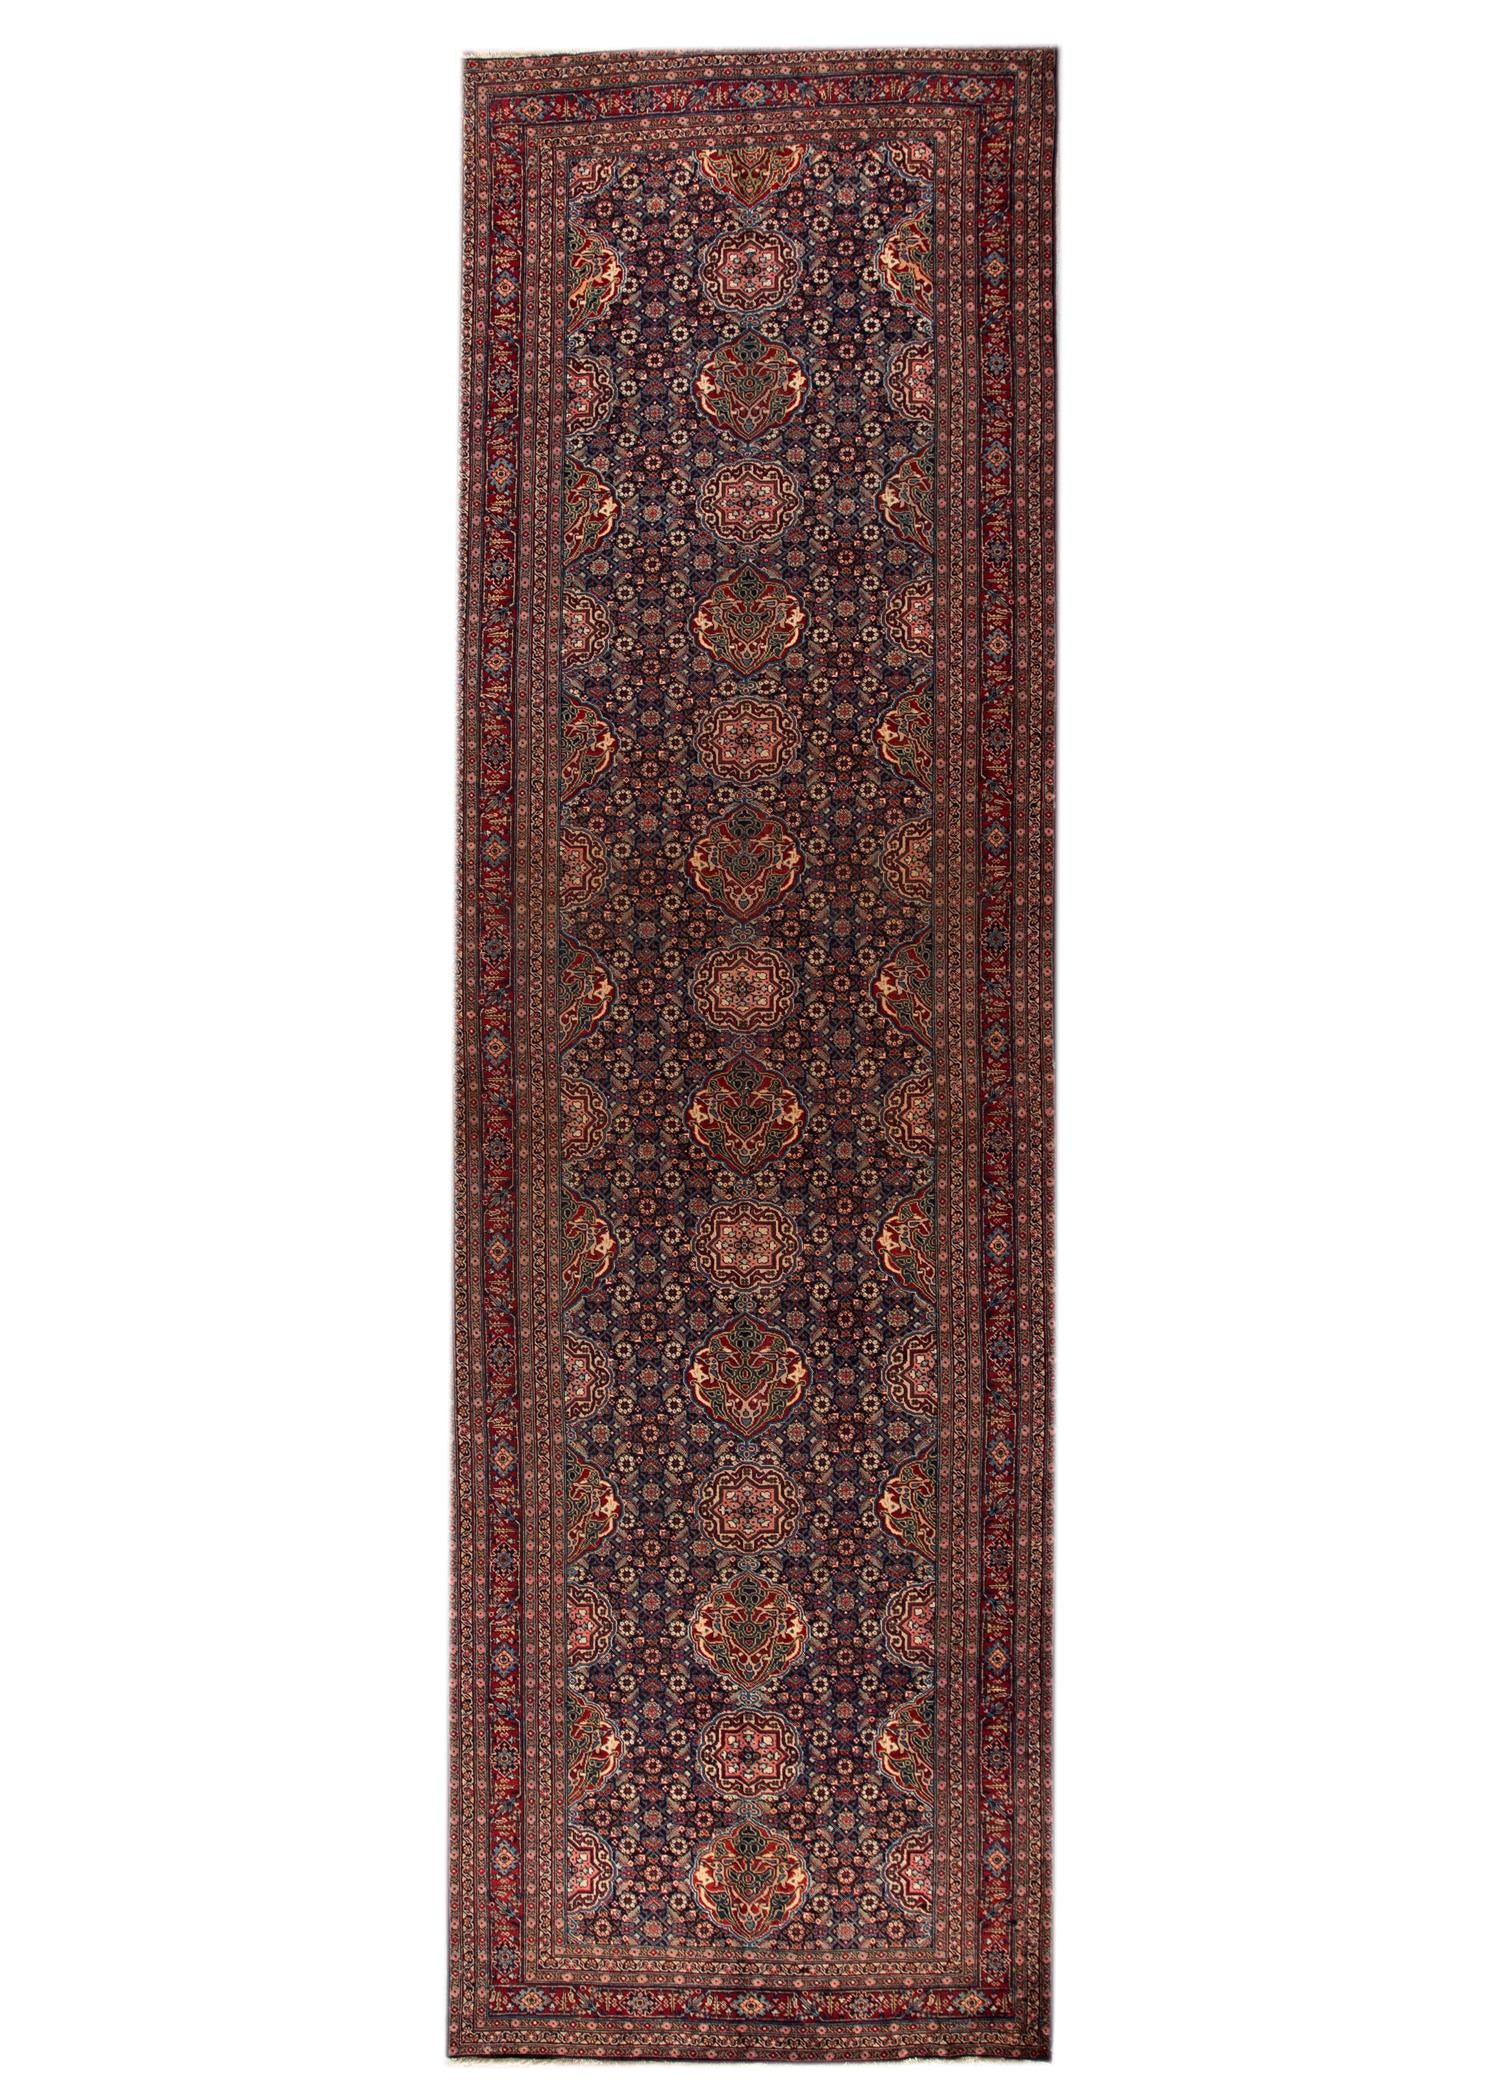 Antique Tabriz Rug, 6 X 19